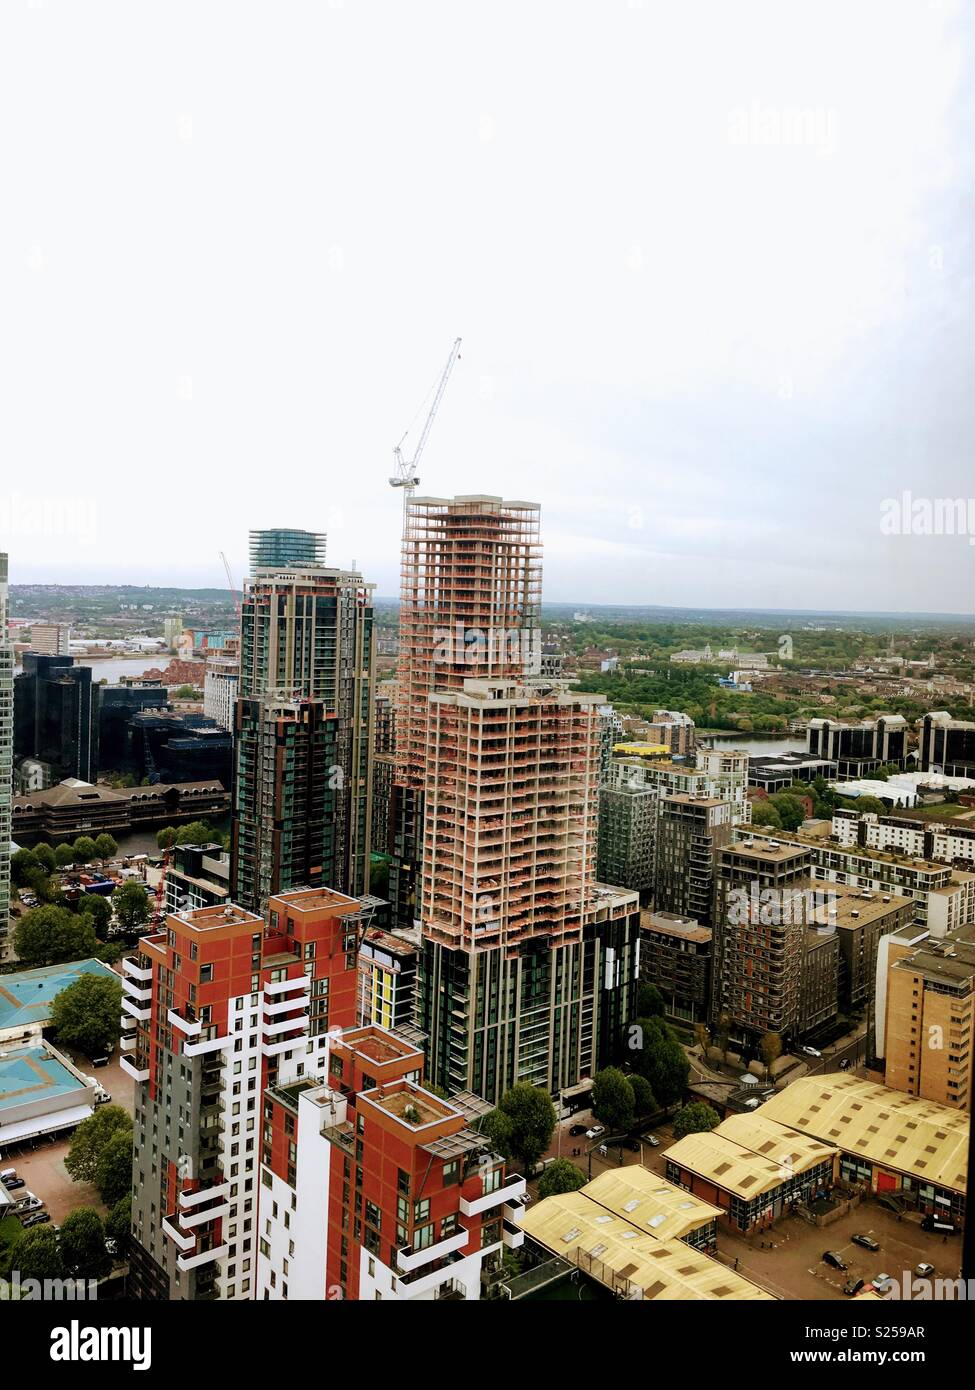 High Riser Building Skyline - Stock Image